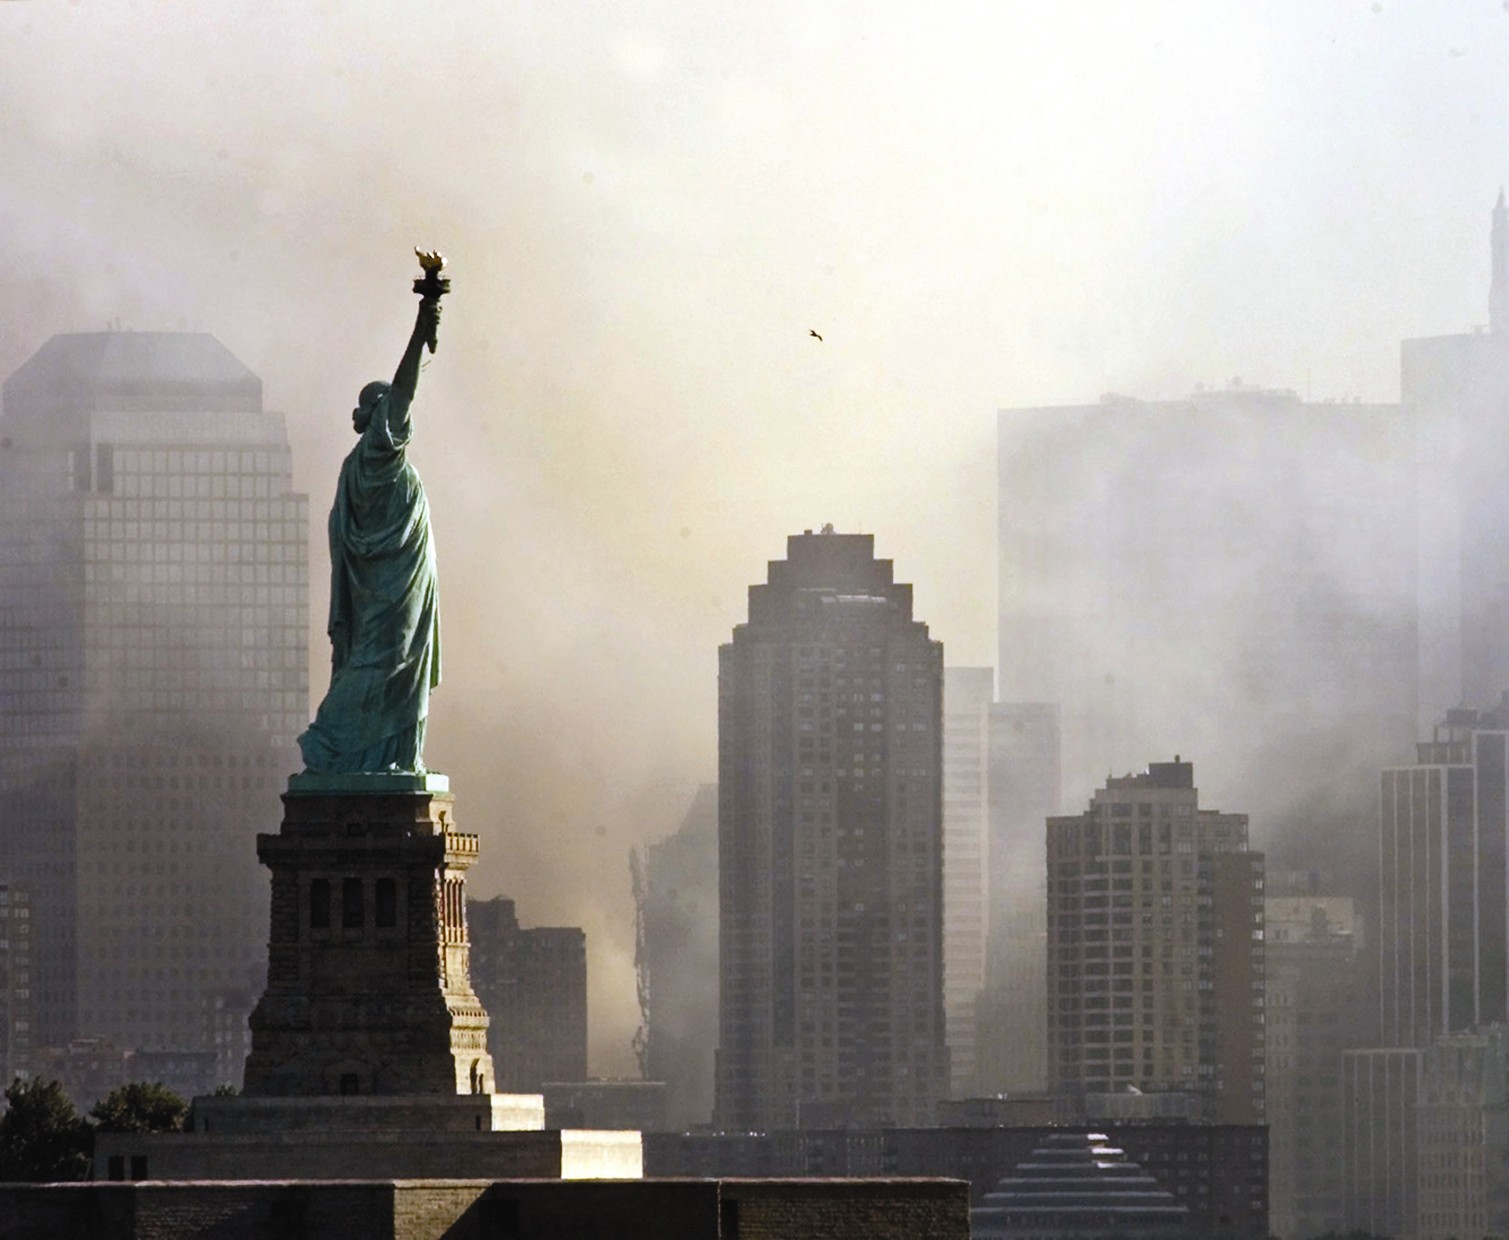 New Unseen Footage Emerges from the 9/11 Attacks